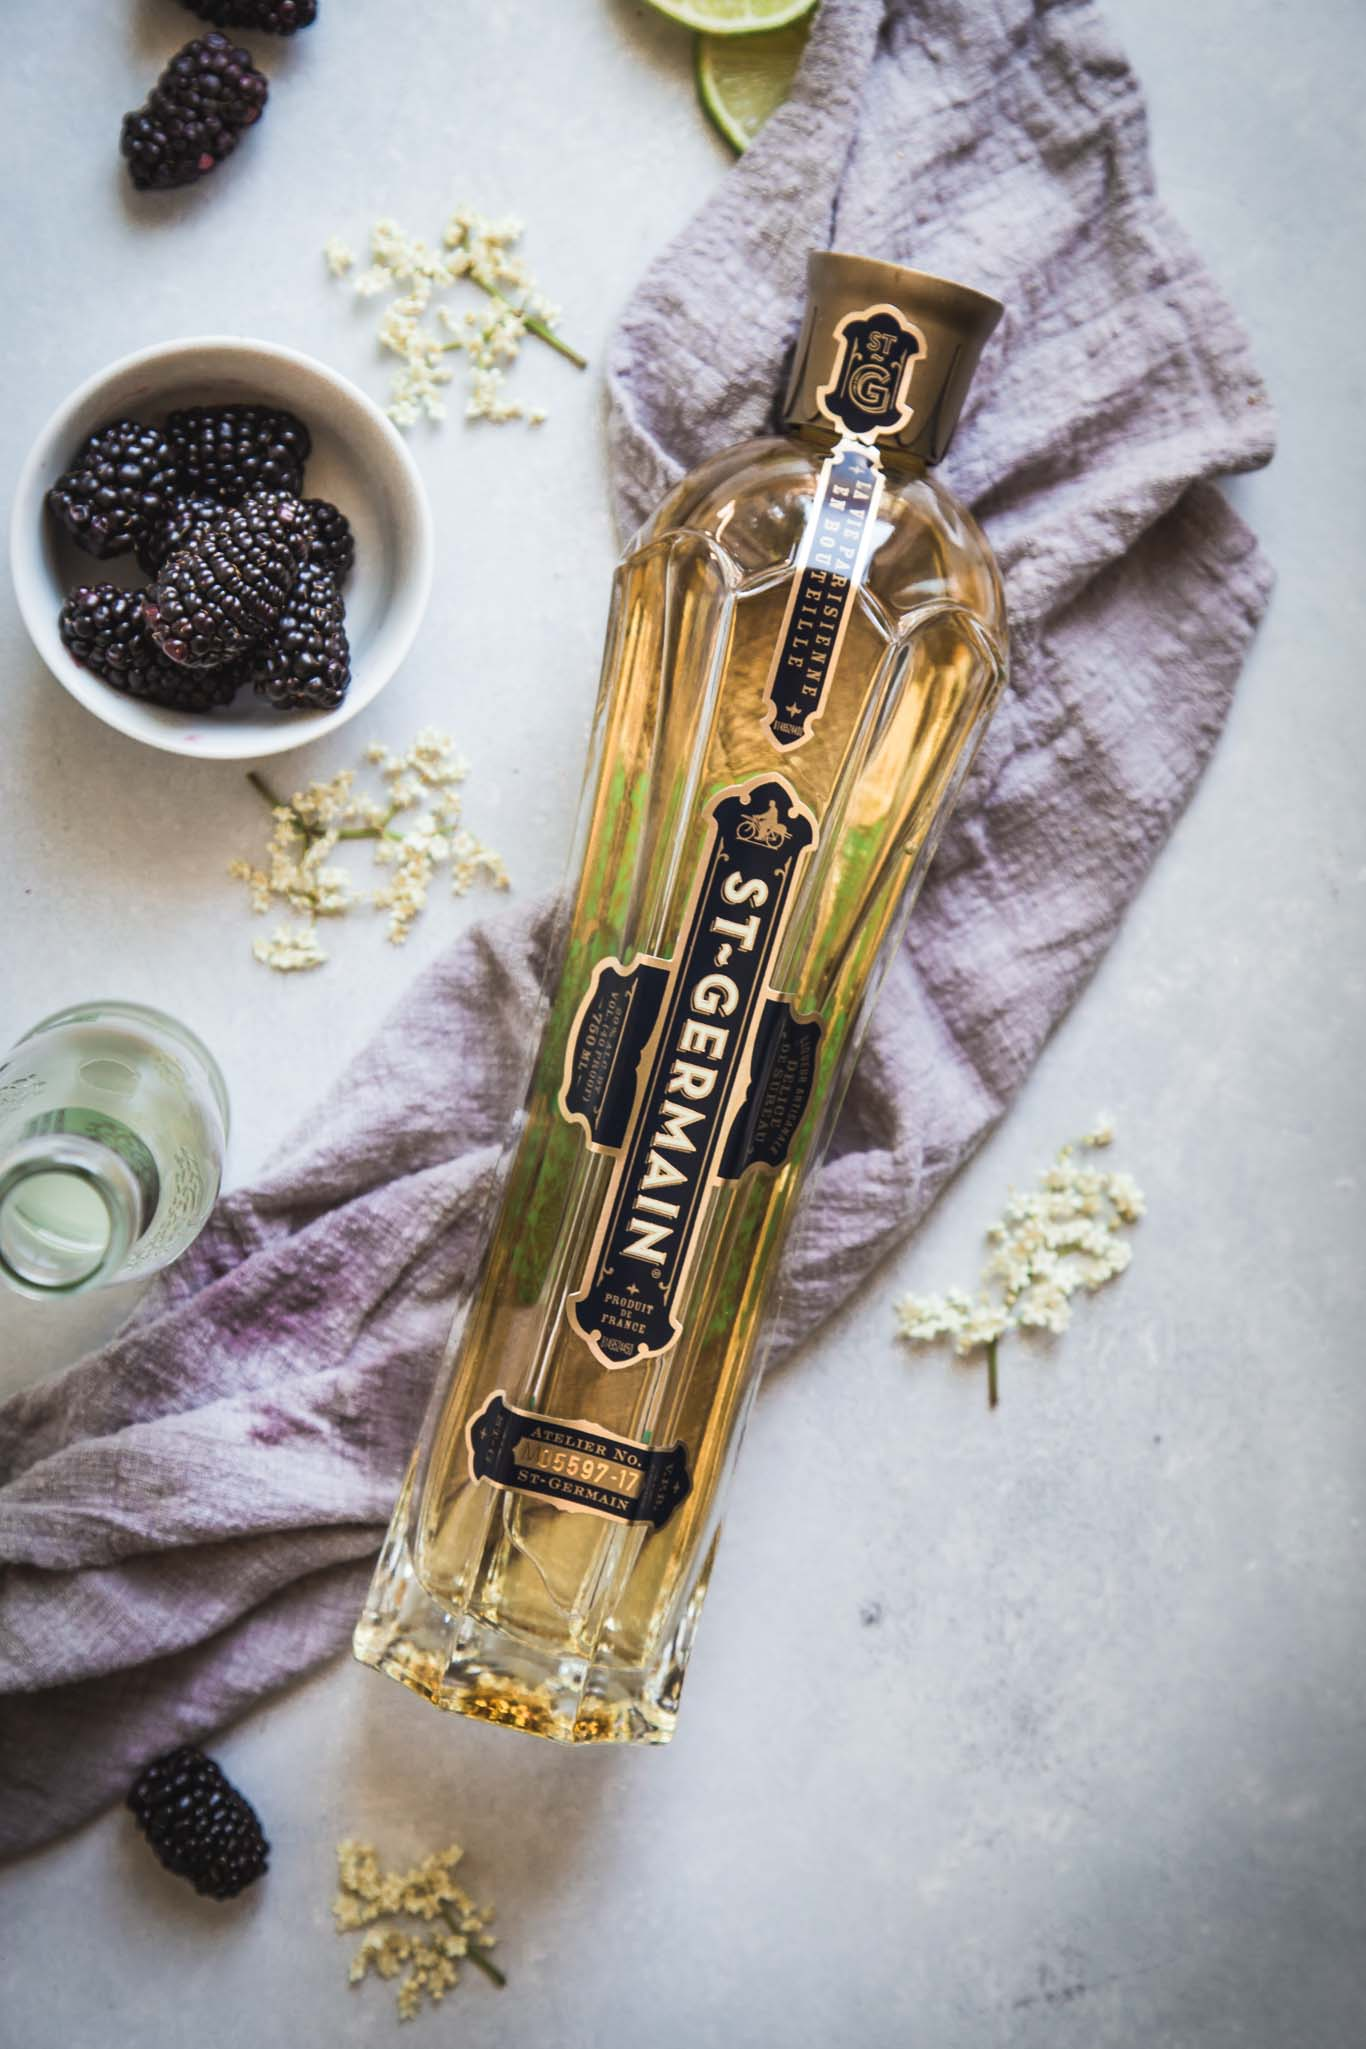 Bottle of St. Germain